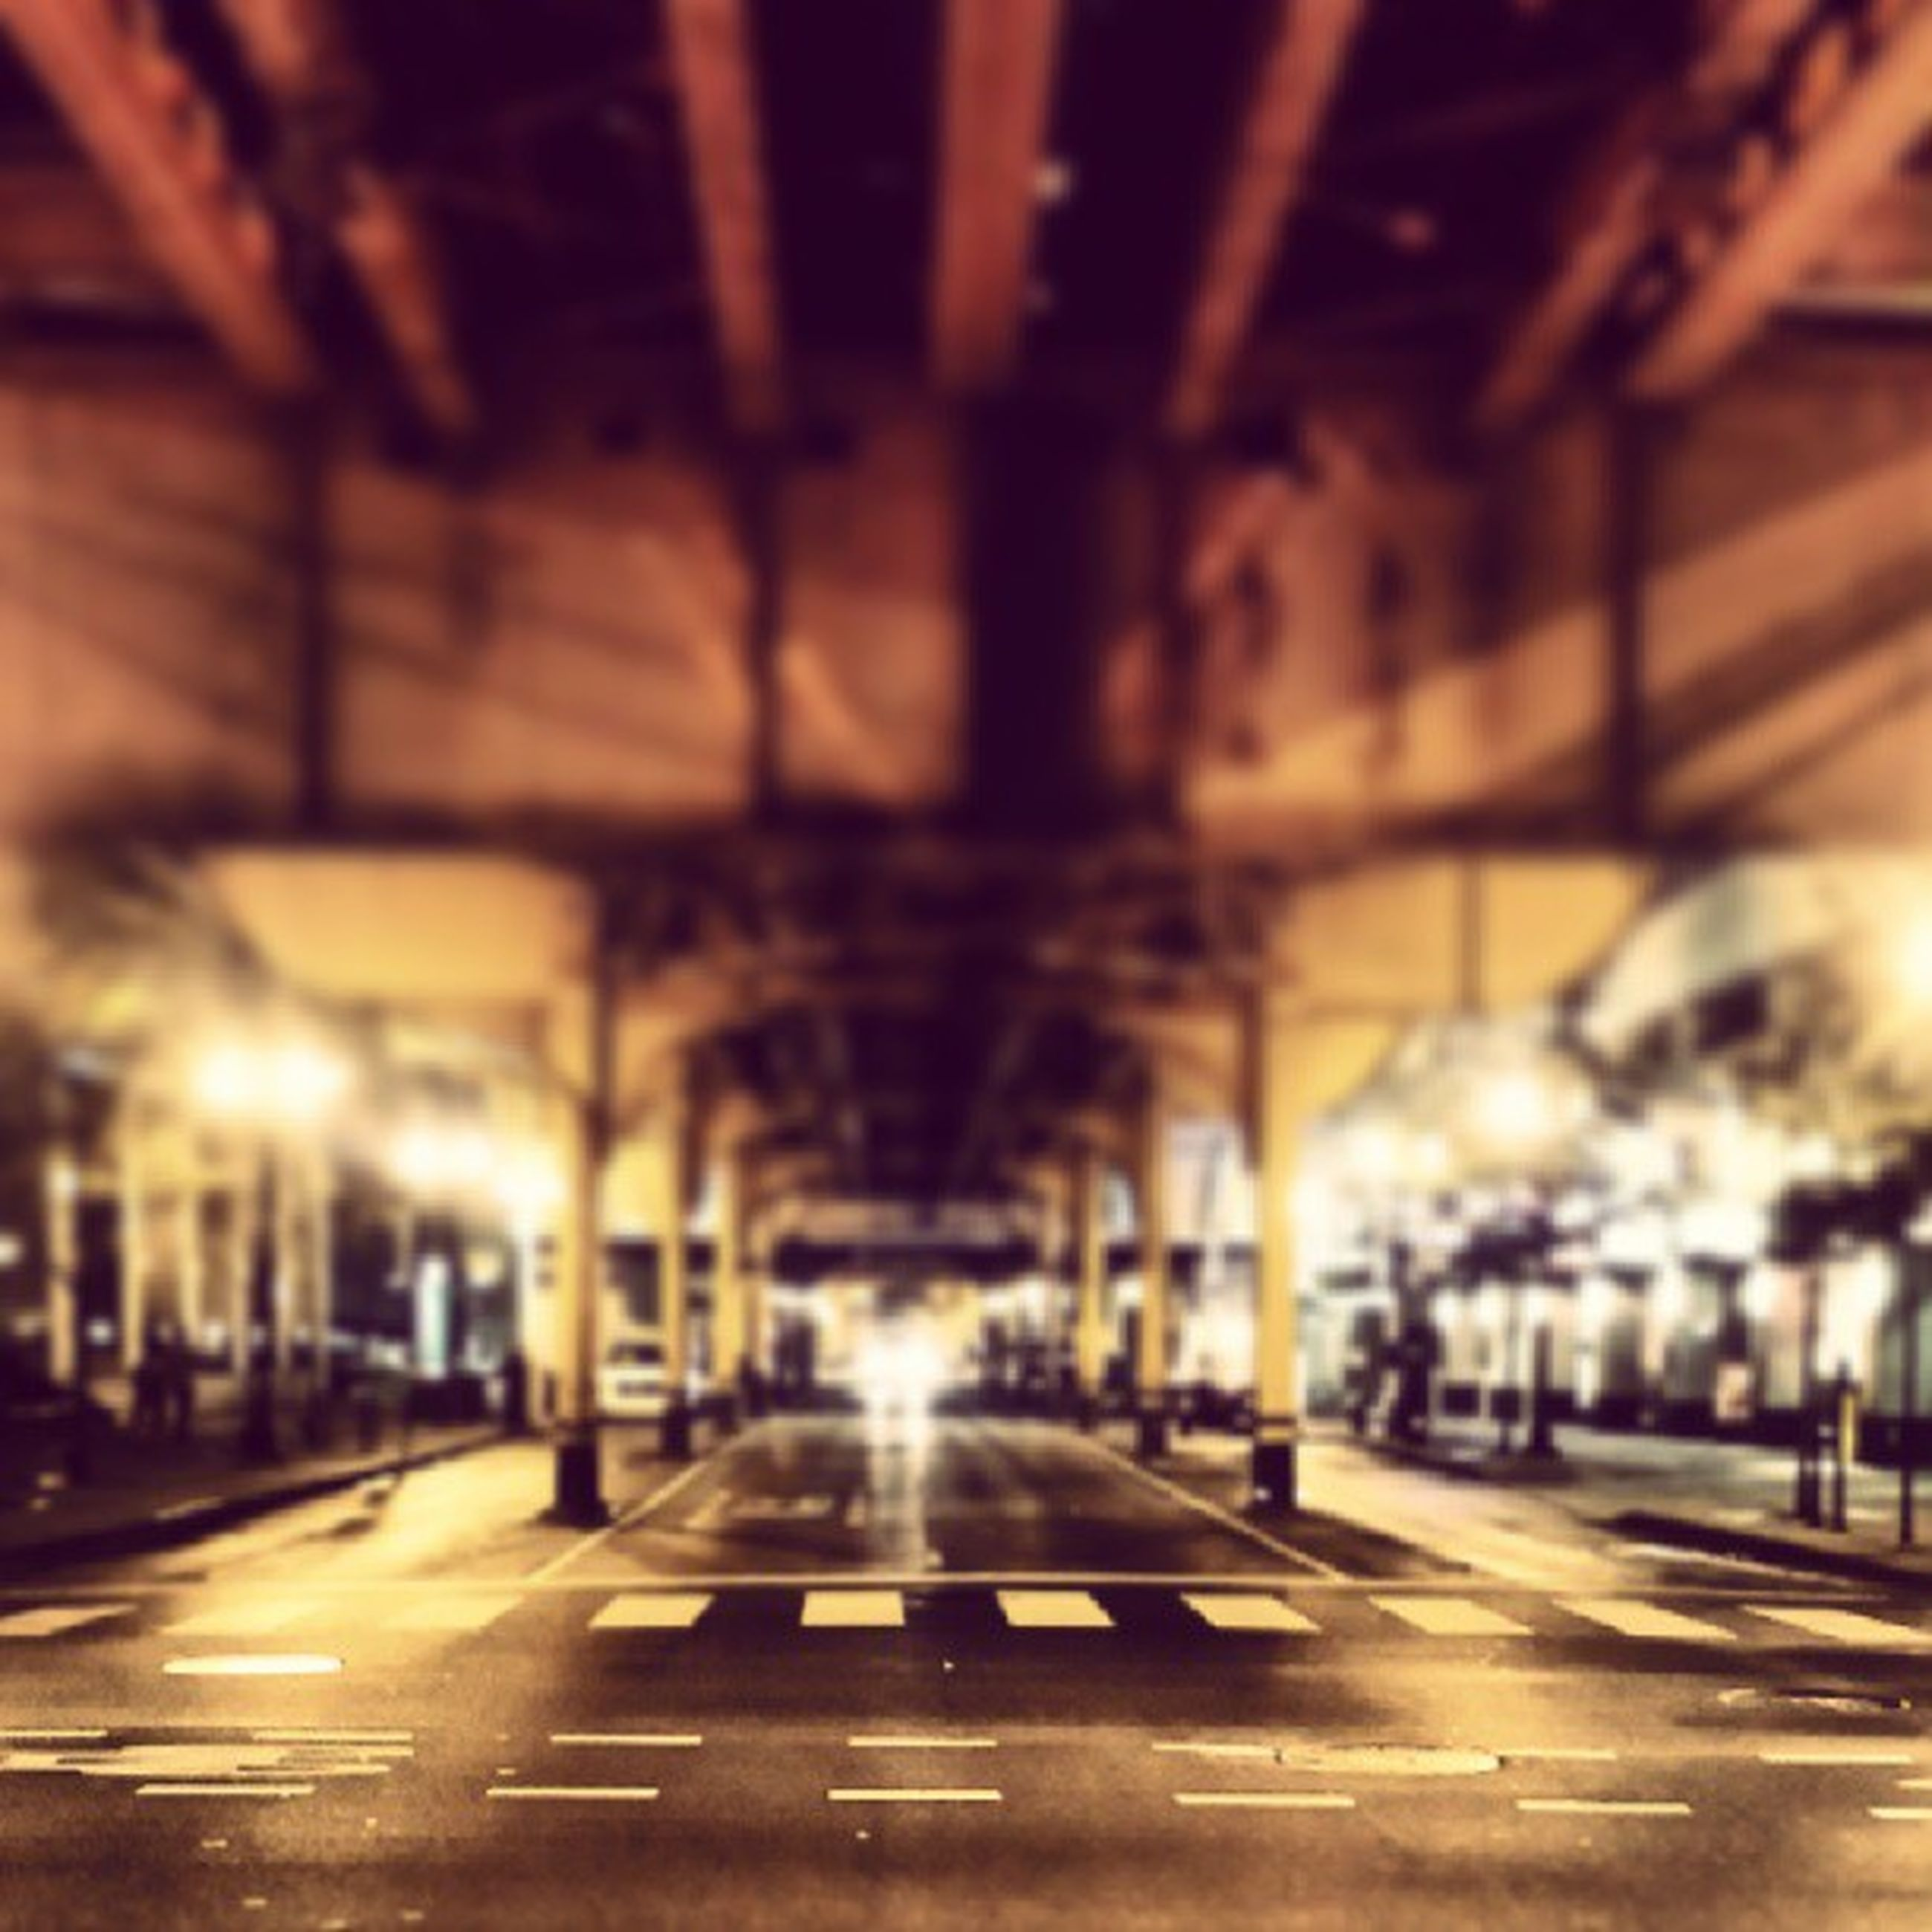 illuminated, architecture, transportation, built structure, city, road, the way forward, street, night, building exterior, lighting equipment, road marking, car, city life, street light, diminishing perspective, city street, empty, land vehicle, incidental people